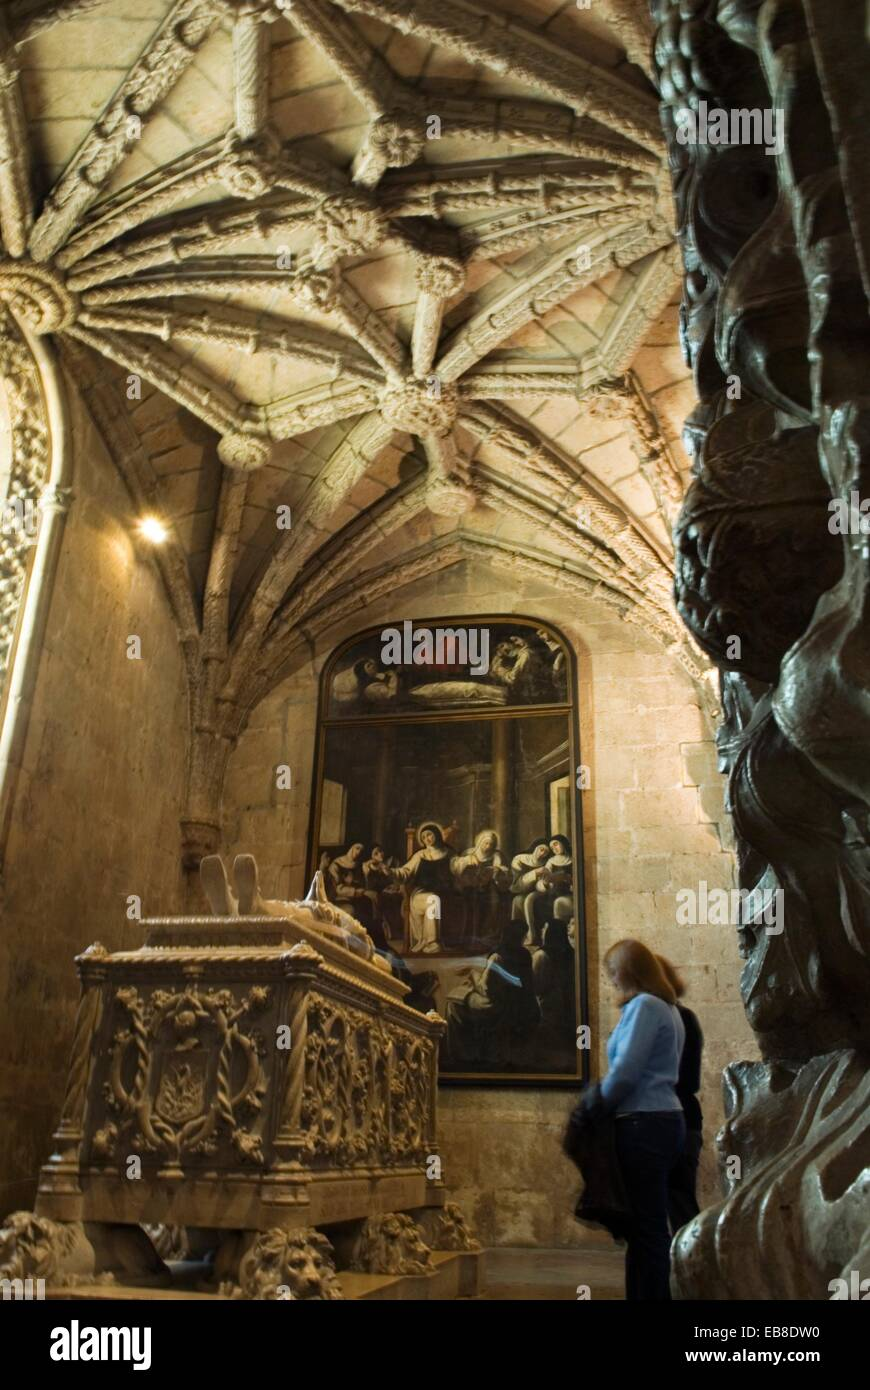 tomb of Luis Camoes in a lower choir within tha Church of Santa Maria, Jeronimos Monastery, lisbon, portugal, europe - Stock Image